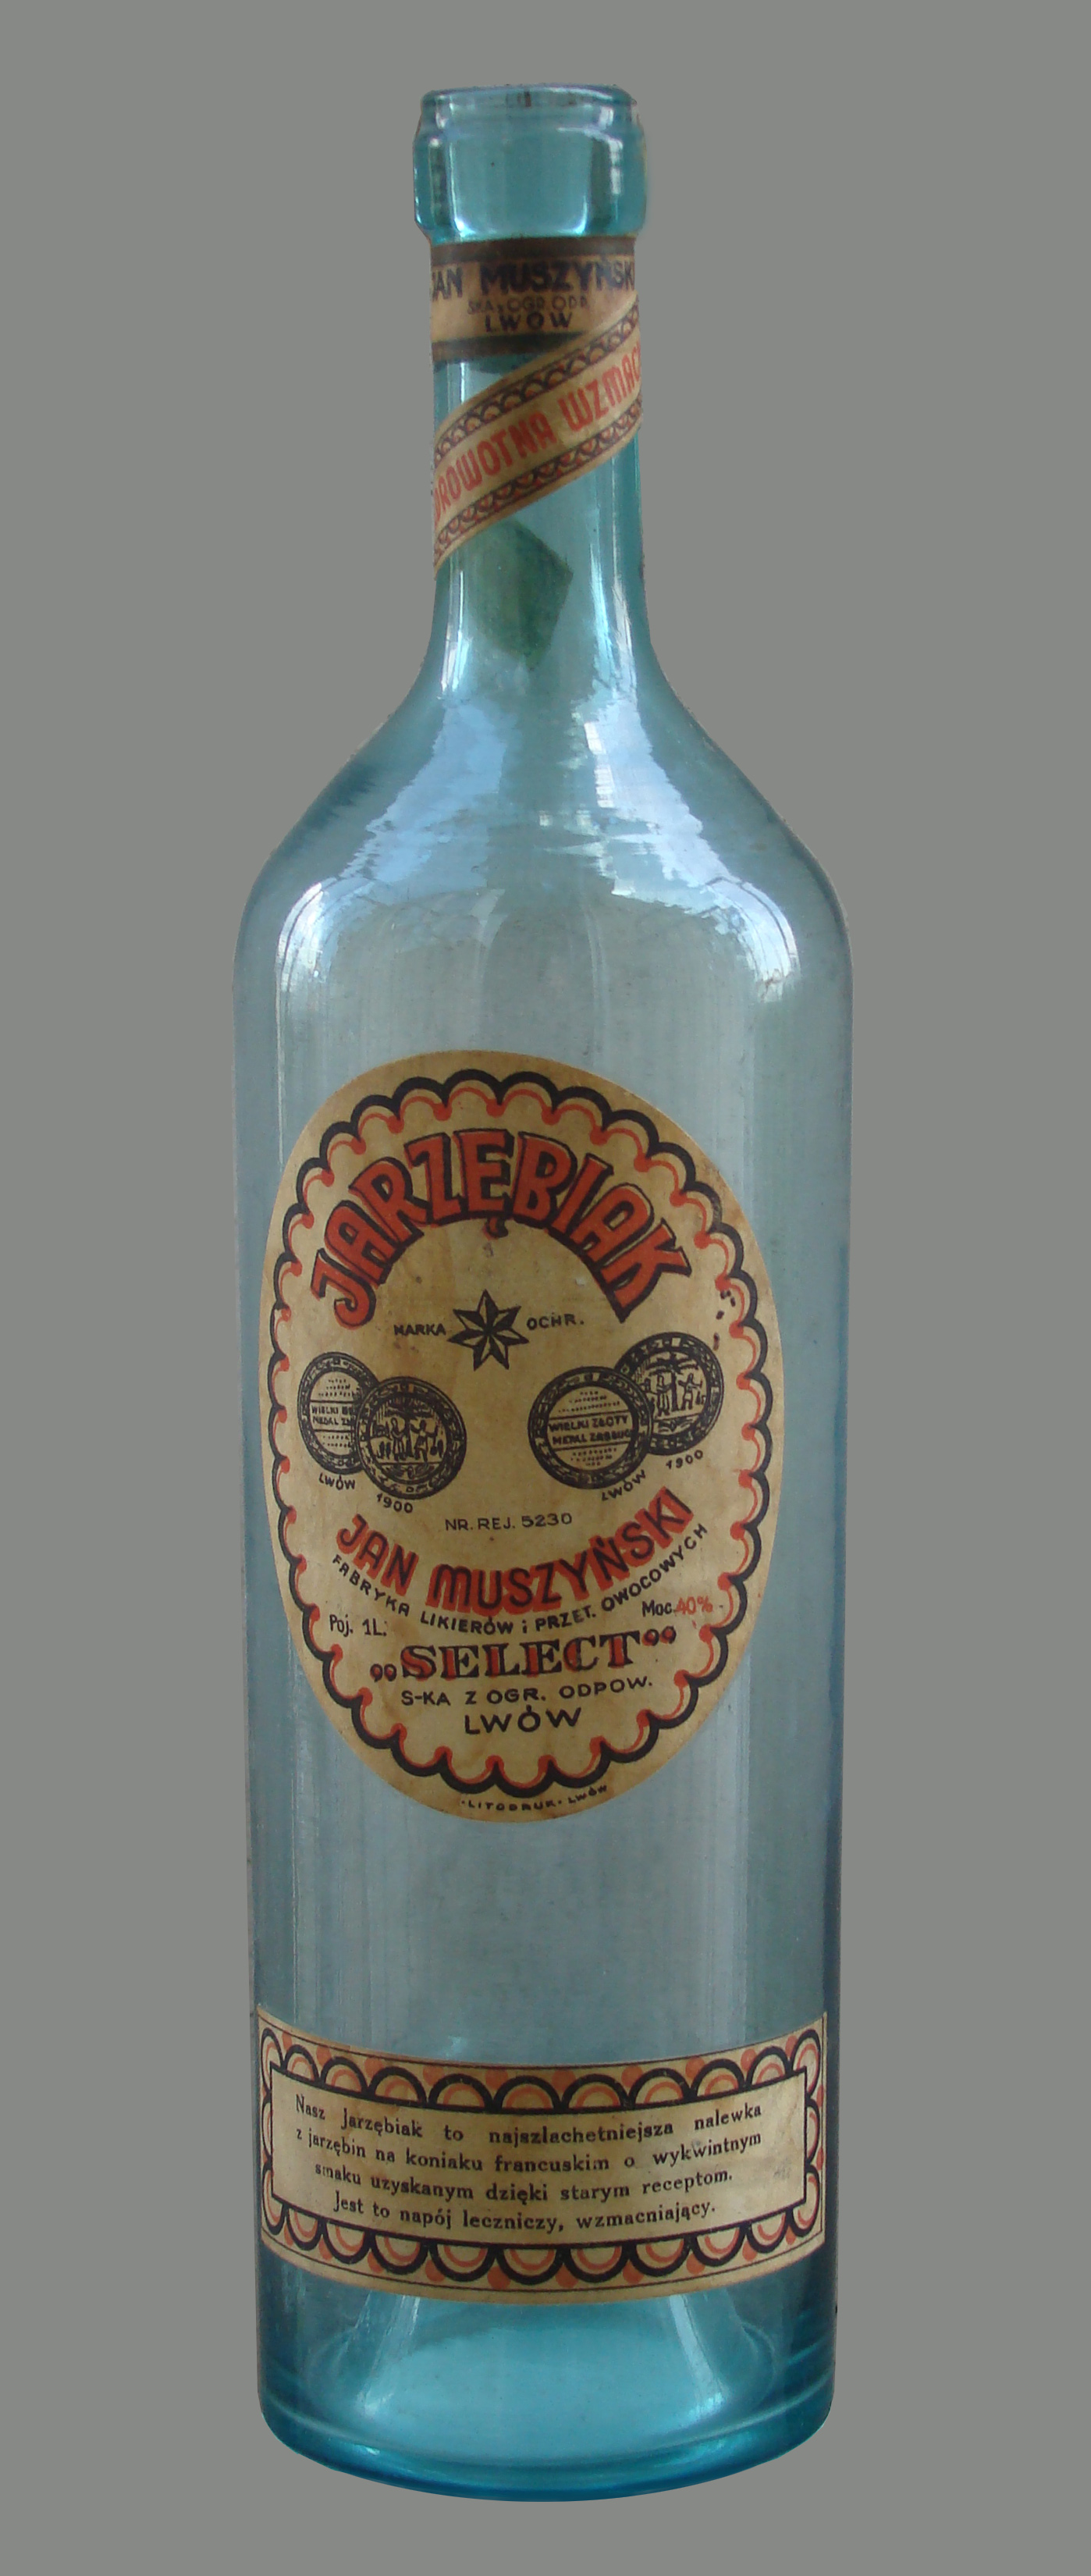 Empty bottle of Polish rowan-berry vodka made by Jan Muszynski factory 1939